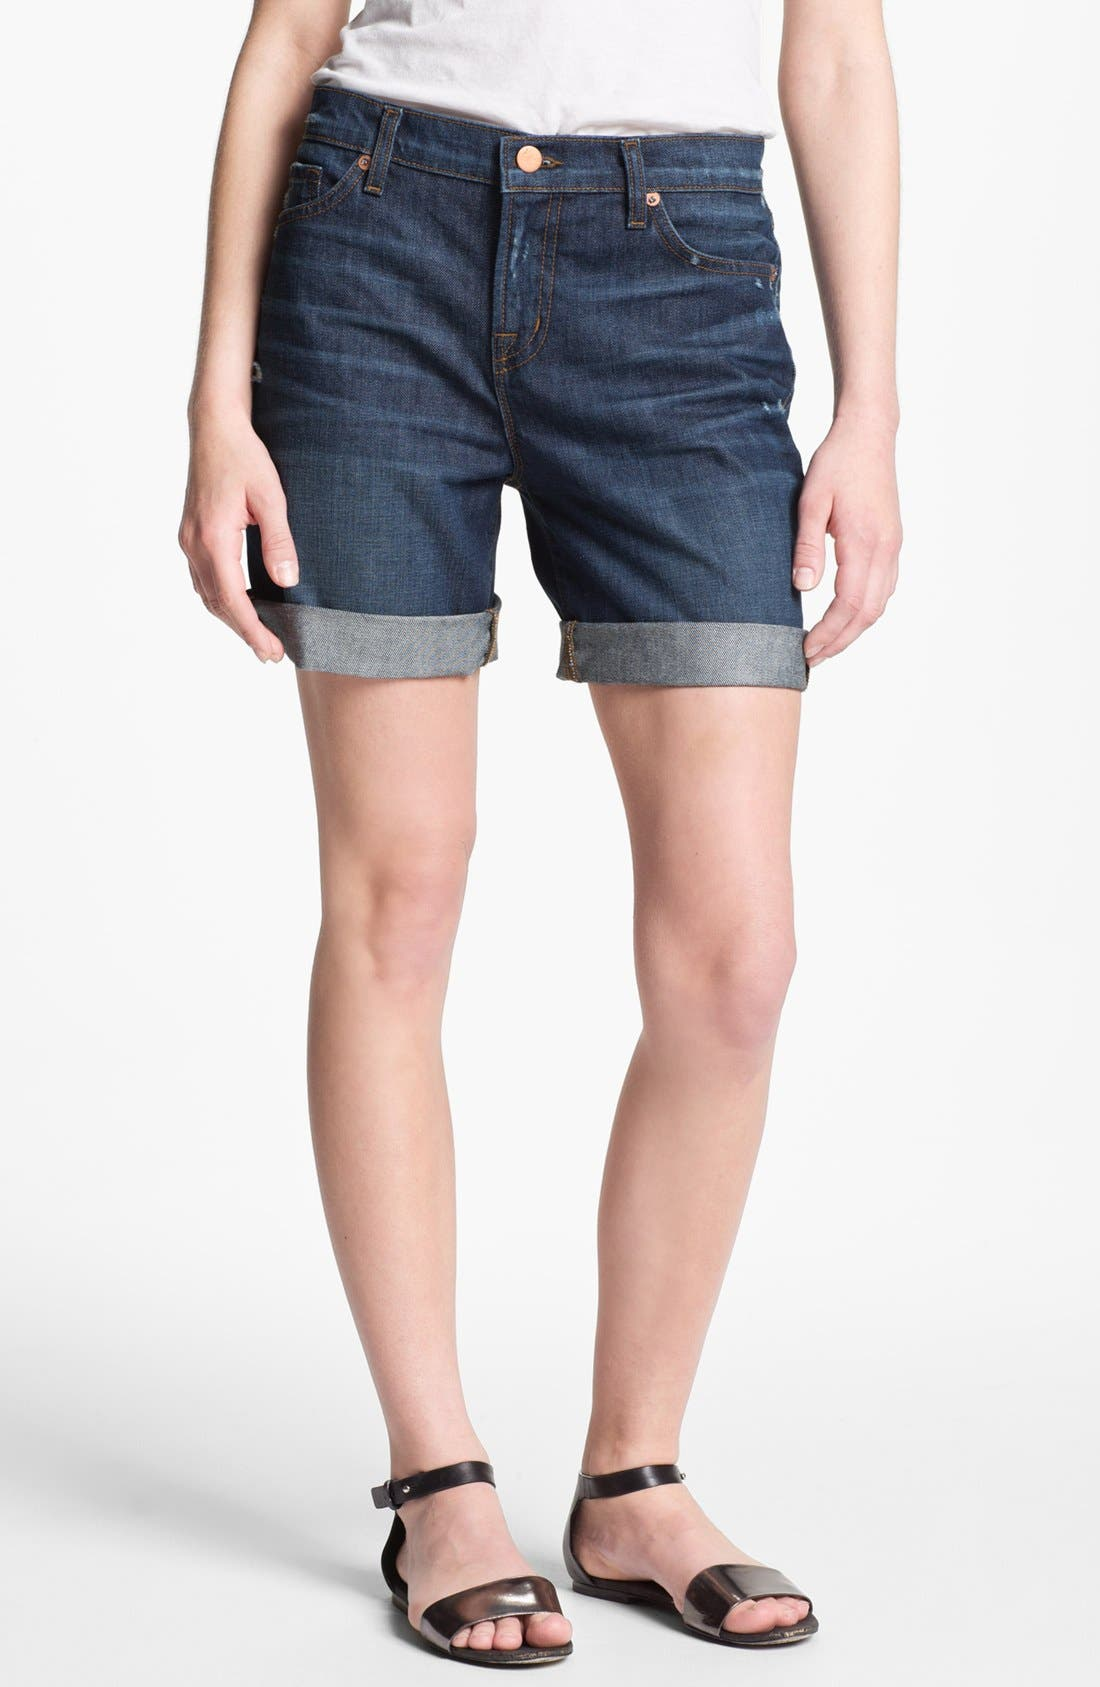 Alternate Image 1 Selected - J Brand 'Nash' Destroyed Denim Shorts (Synthesis)